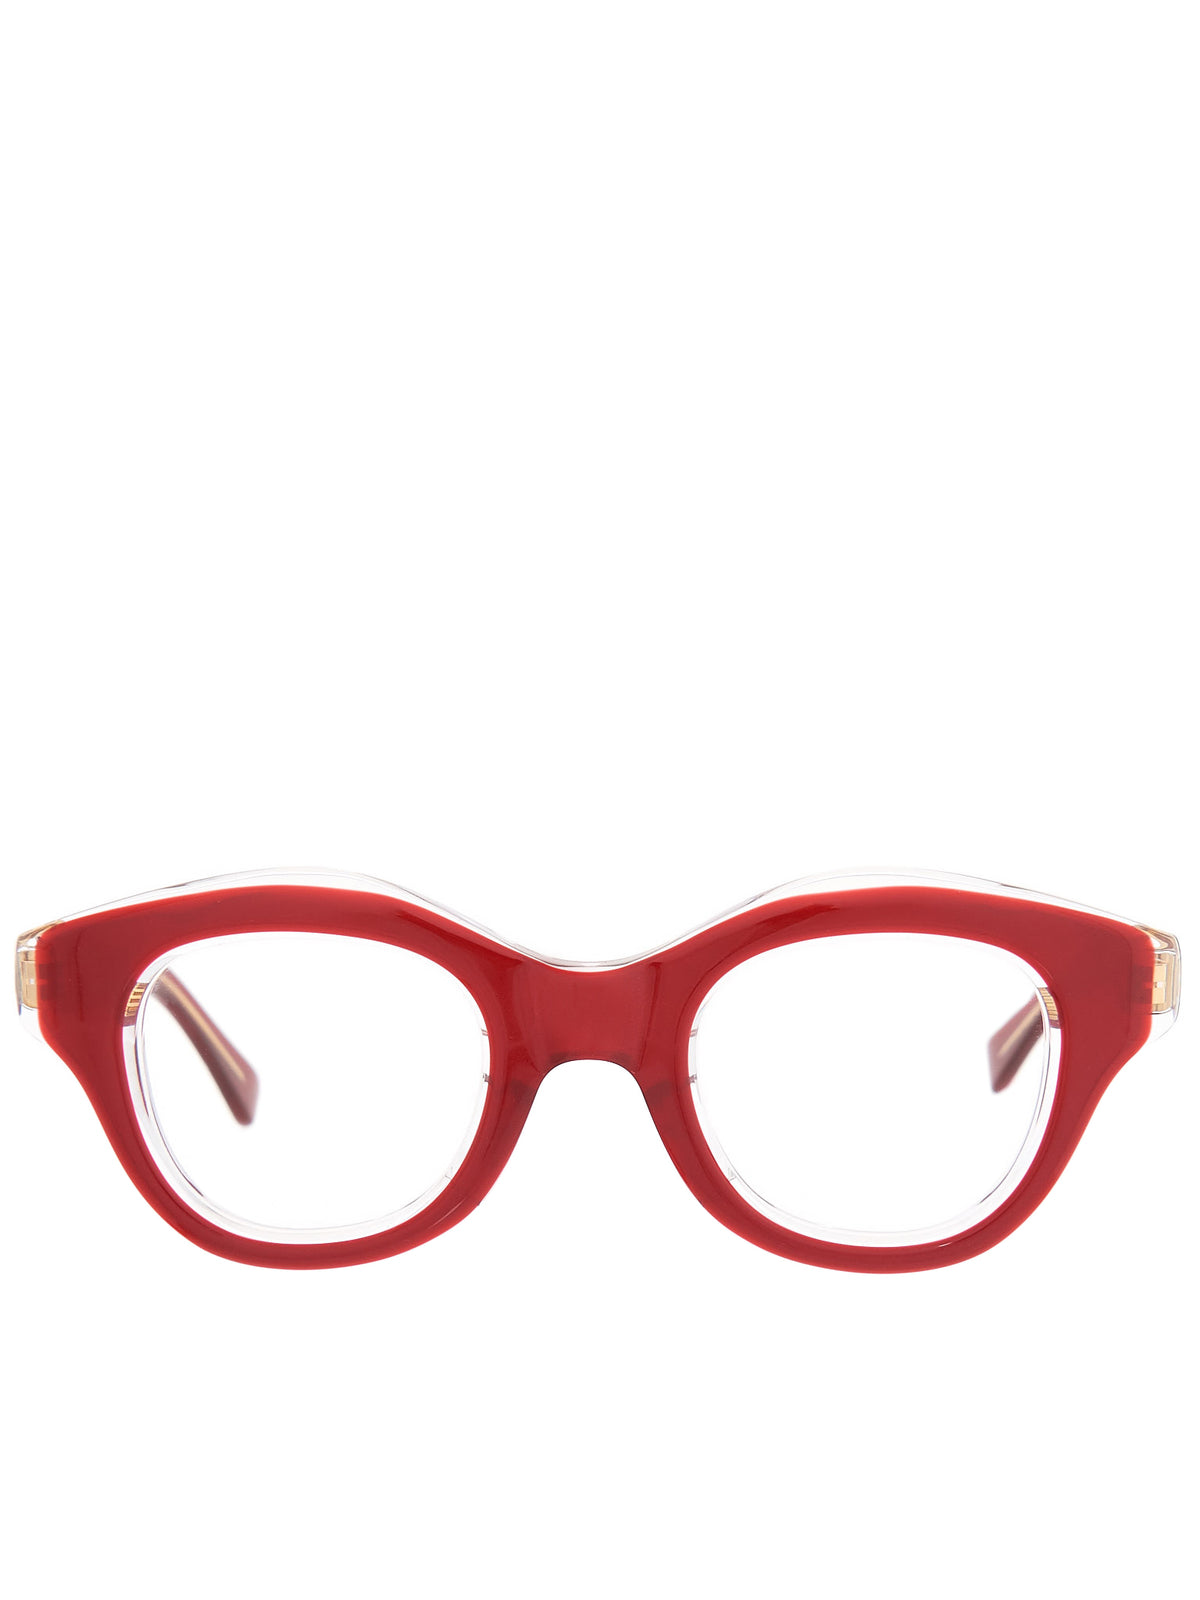 Hook Eyeglasses (HOOK-WINE-CLEAR-CLEAR)